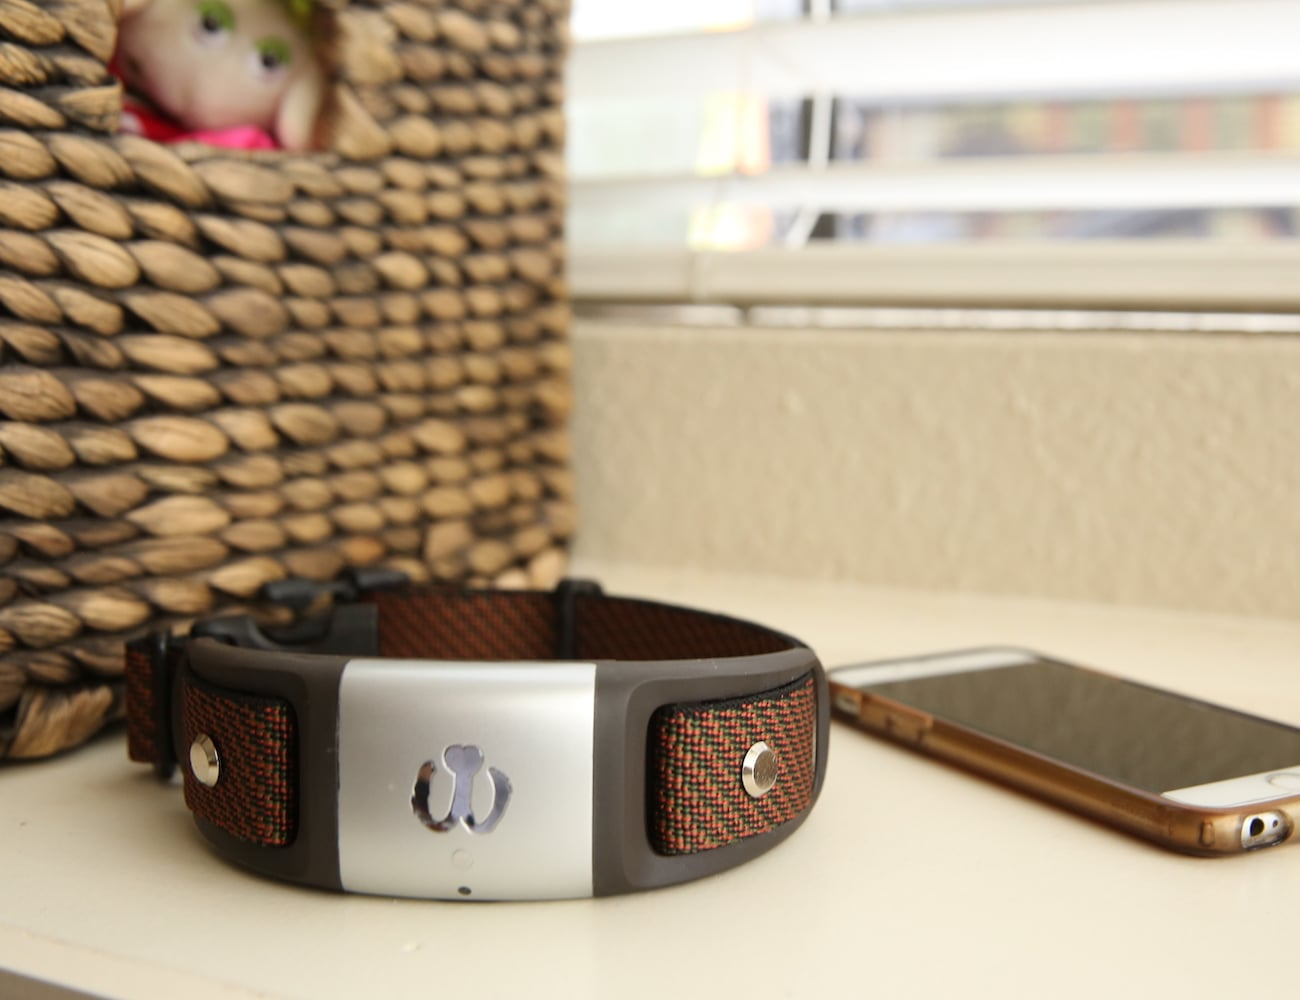 Waggit Smart Dog Health Wearable